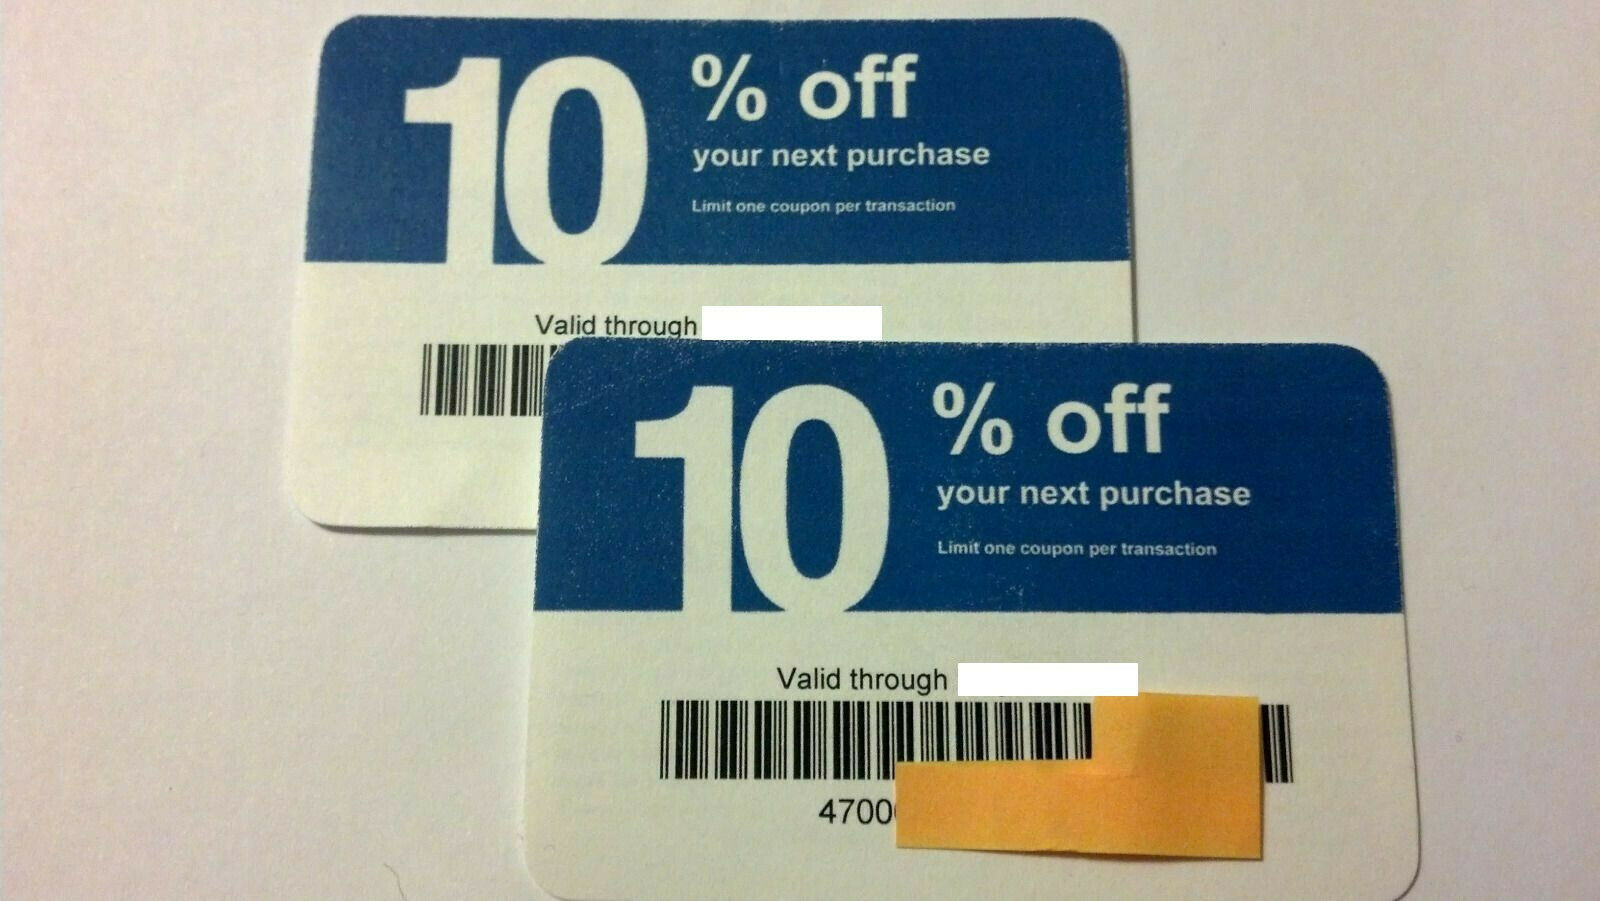 Twenty 20 Lowes 10 Competitors Coupons For Home Depot Expires August 2021 - $10.40